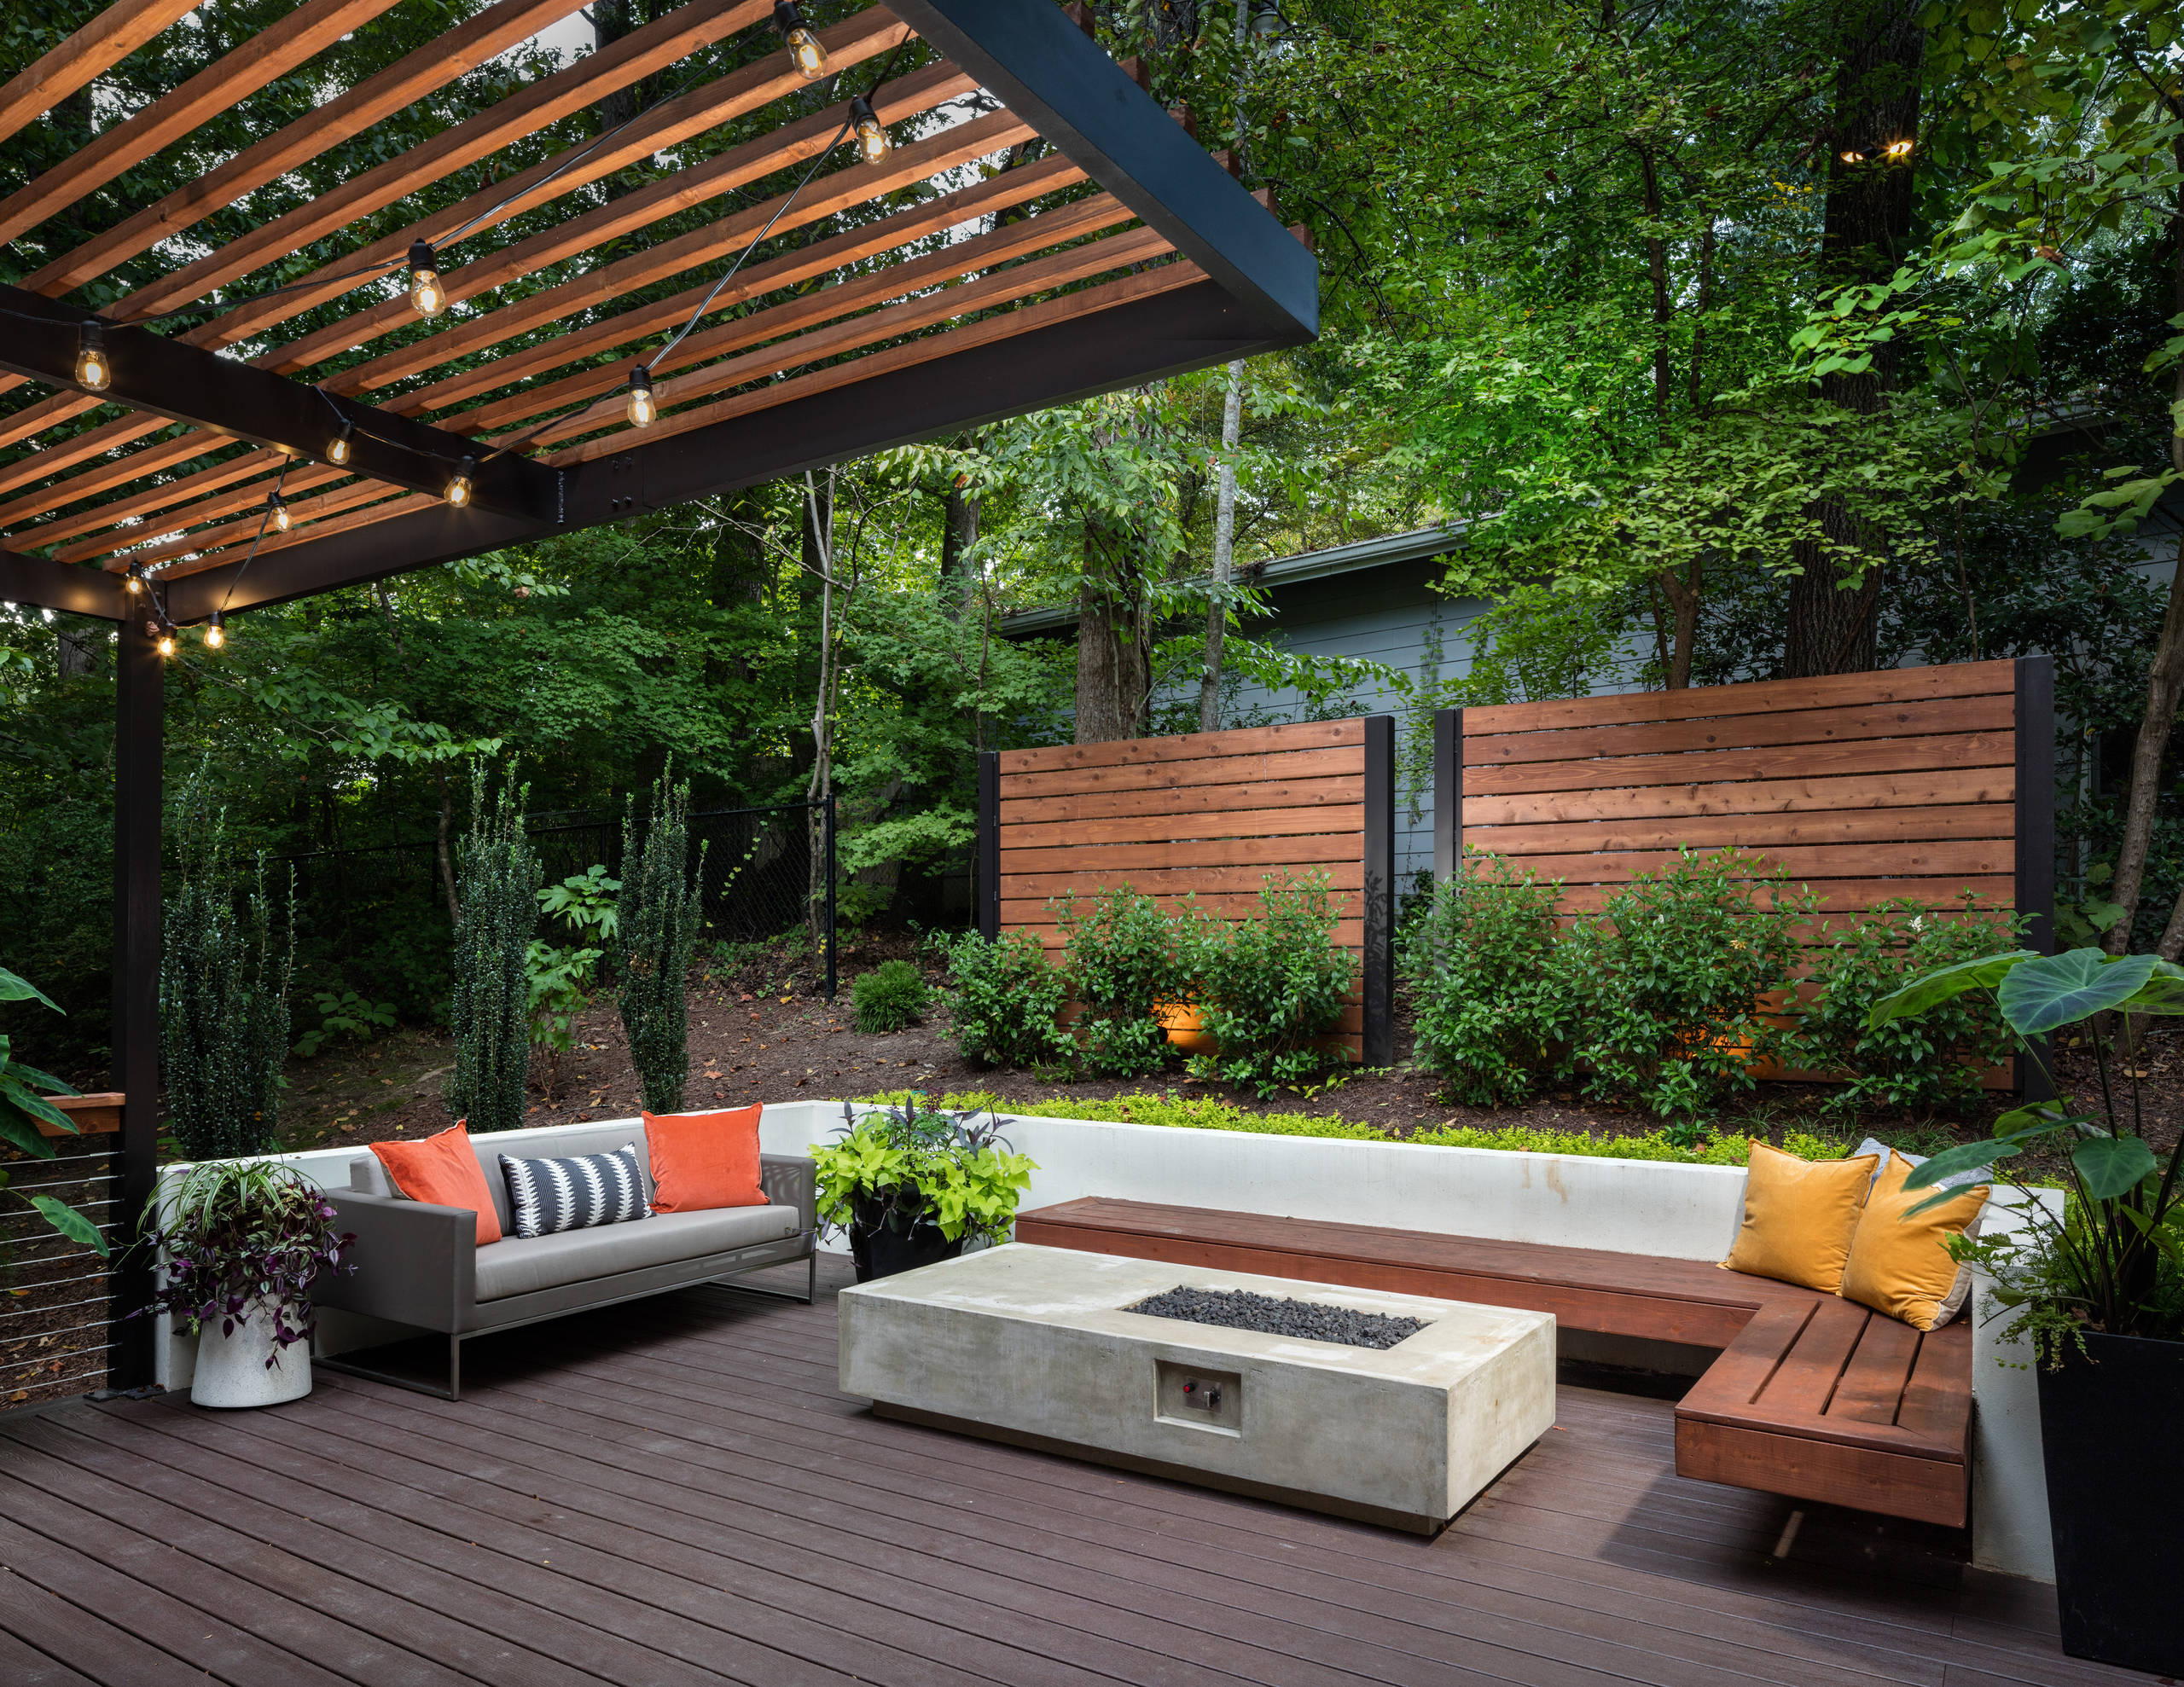 75 Beautiful Deck Pictures & Ideas | Houzz on